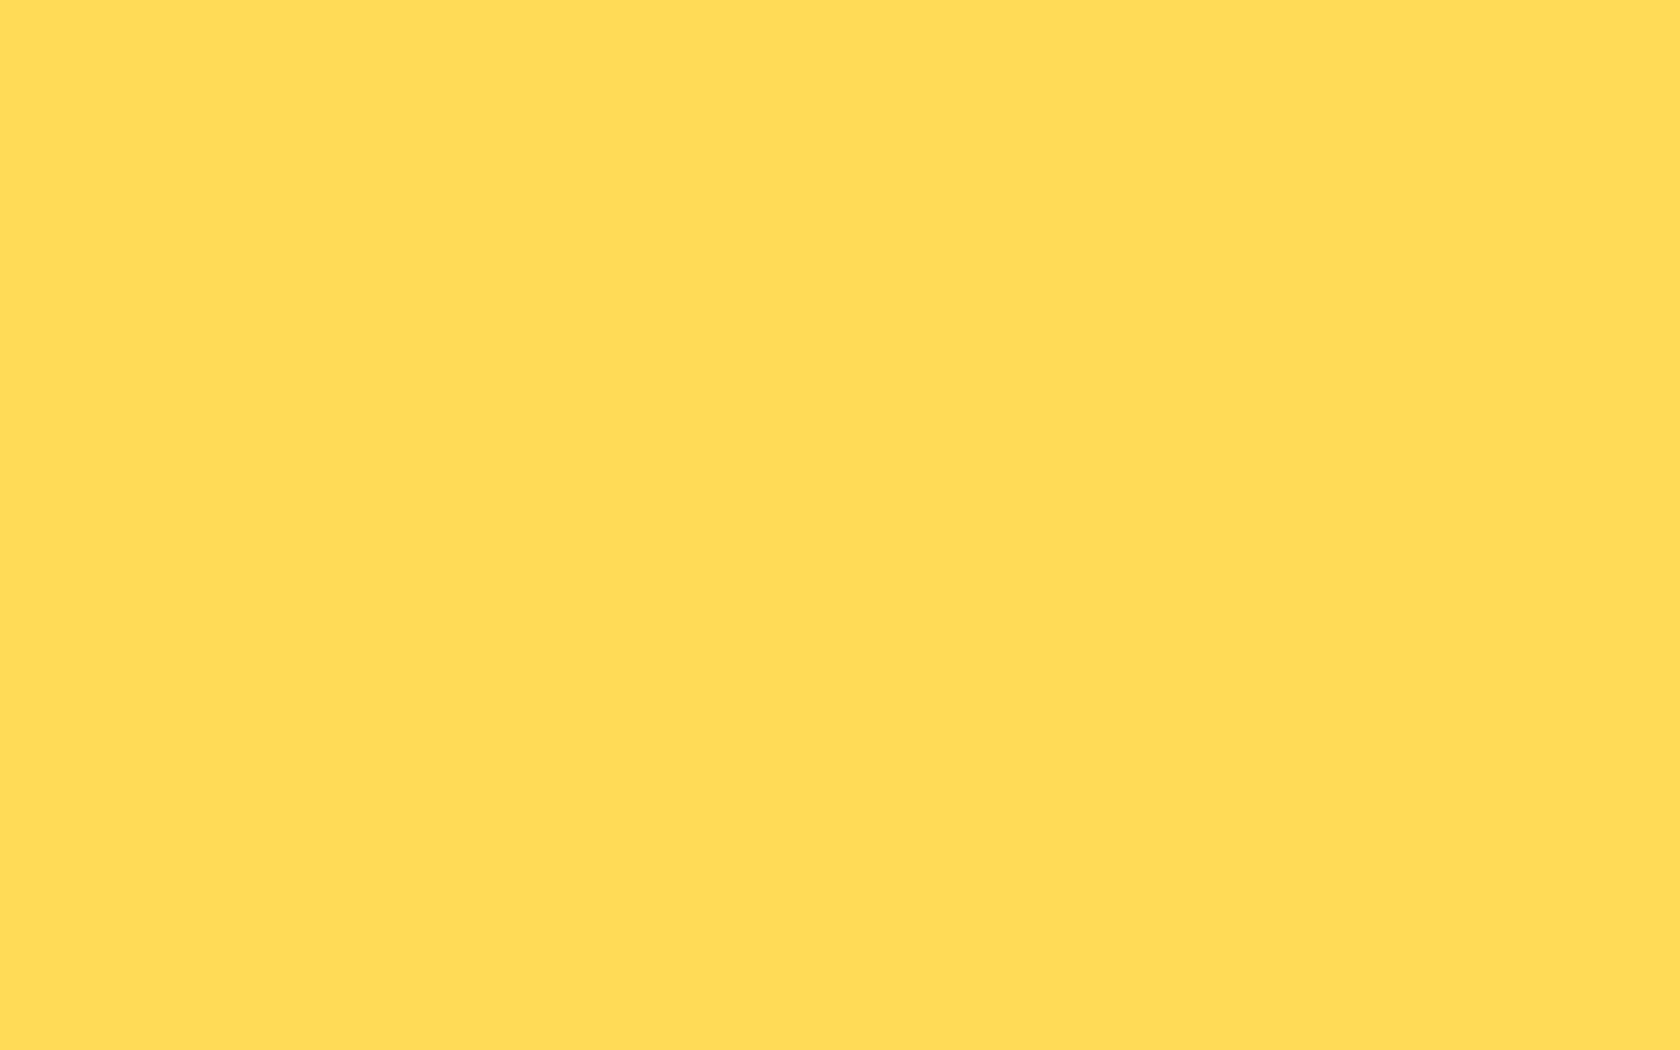 1680x1050 Mustard Solid Color Background